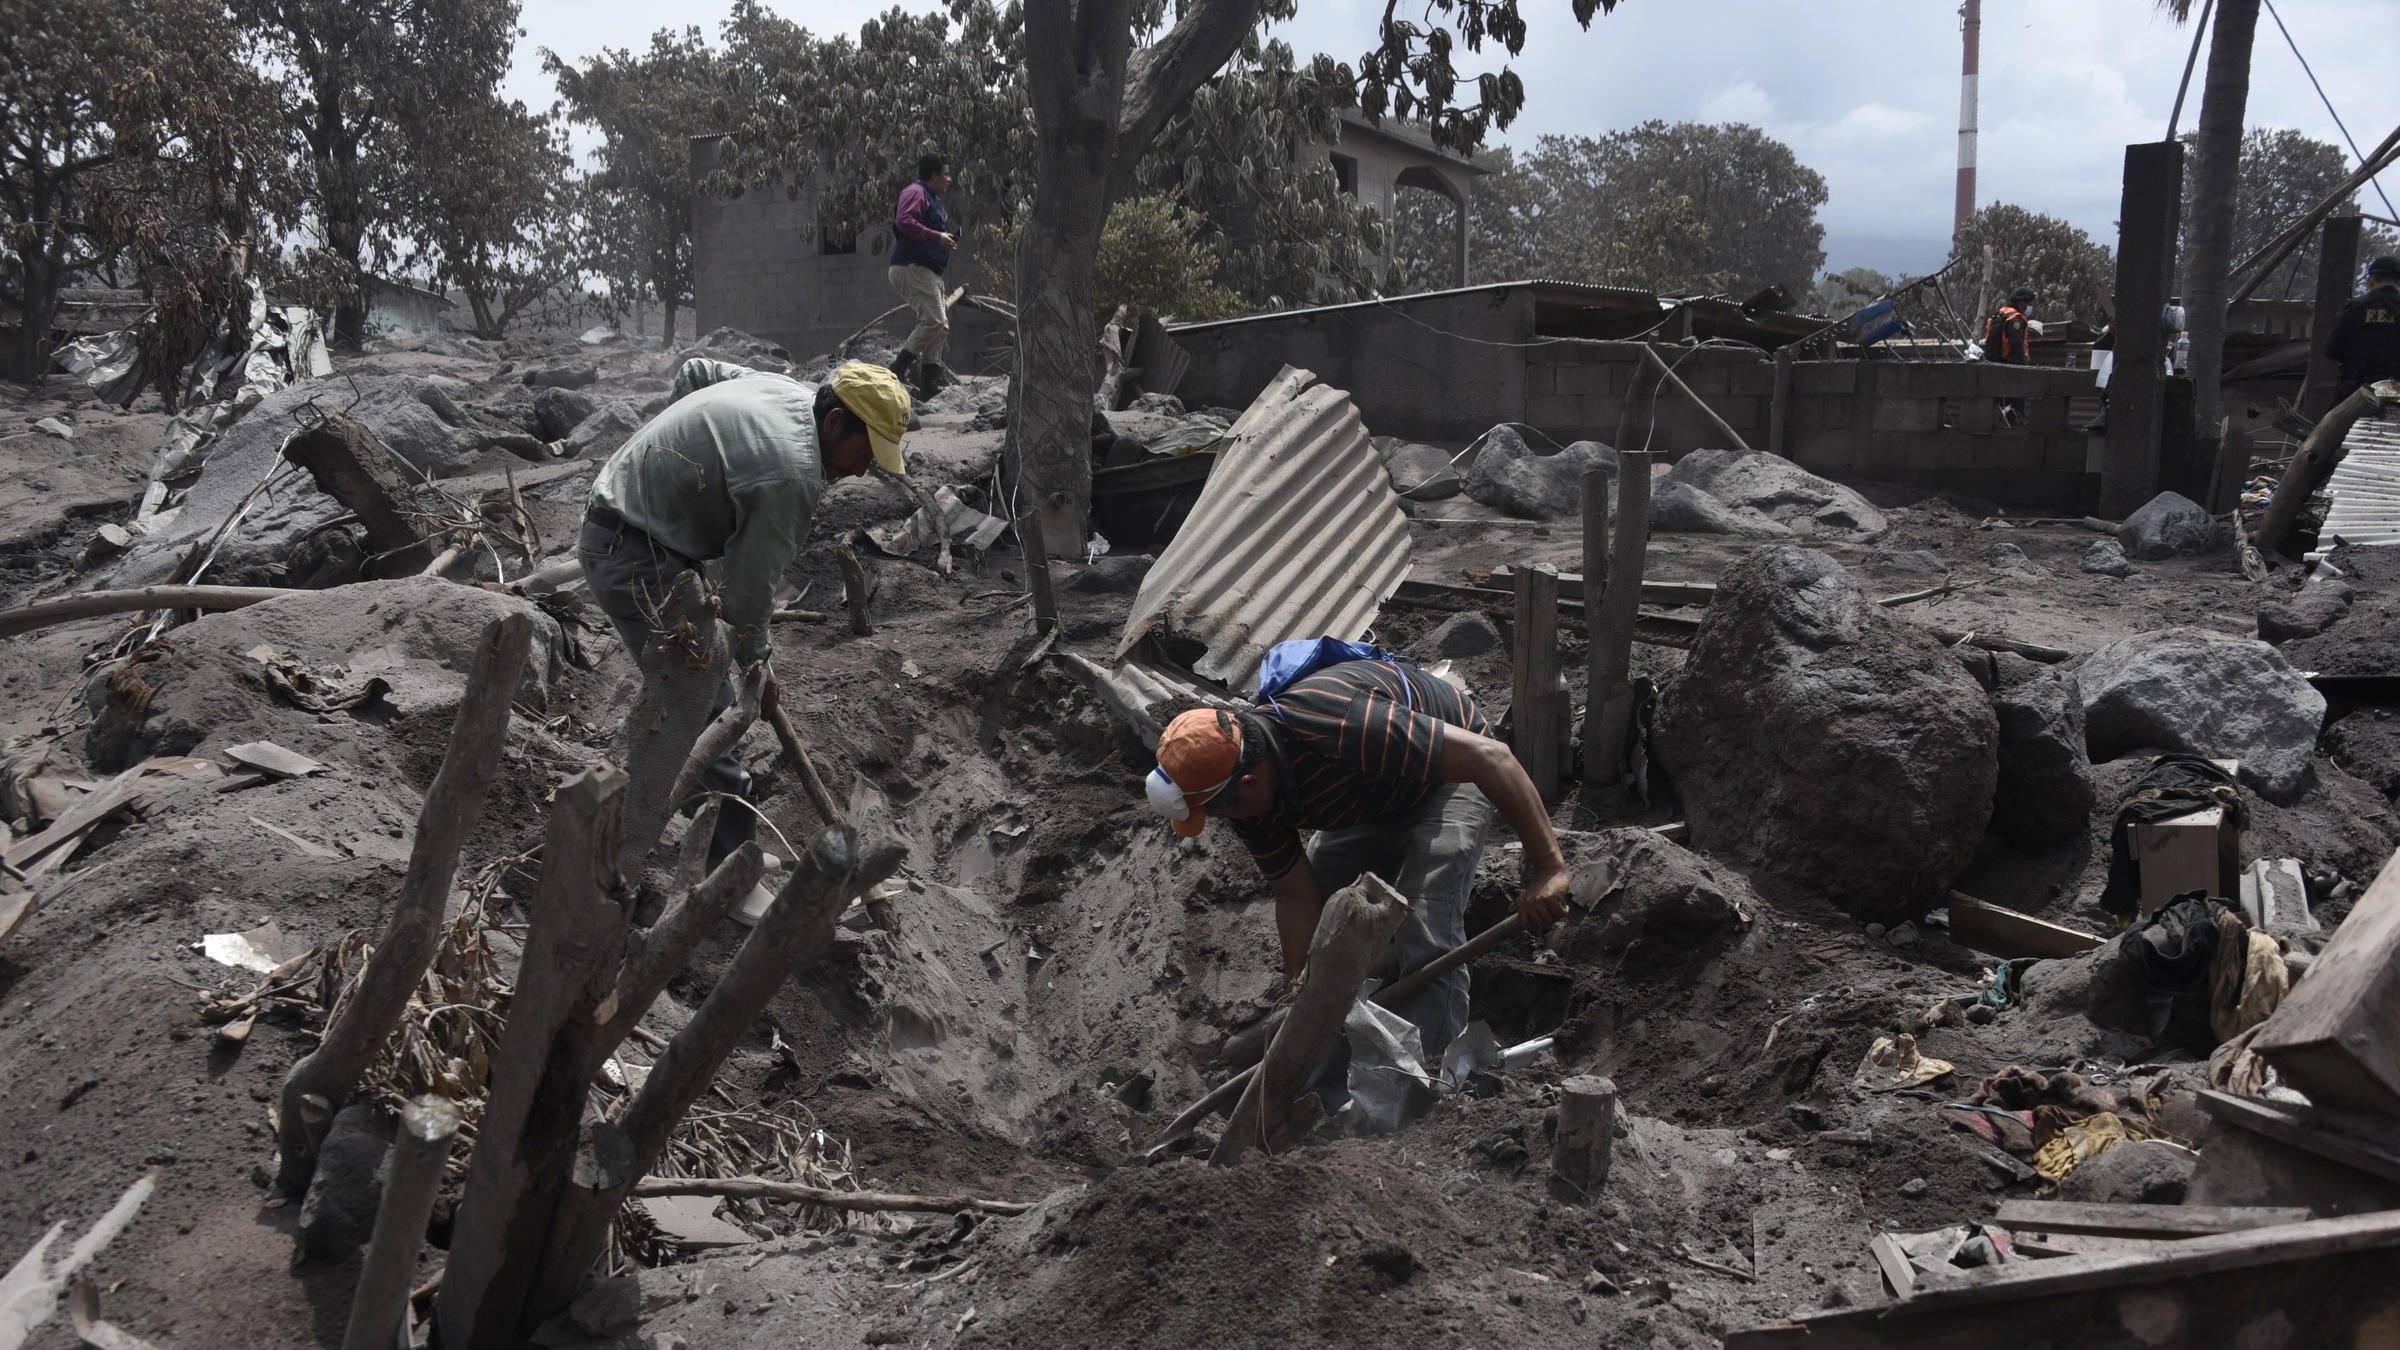 Local Group Giving Guatemalans Hope A Week After Deadly Volcanic Eruption